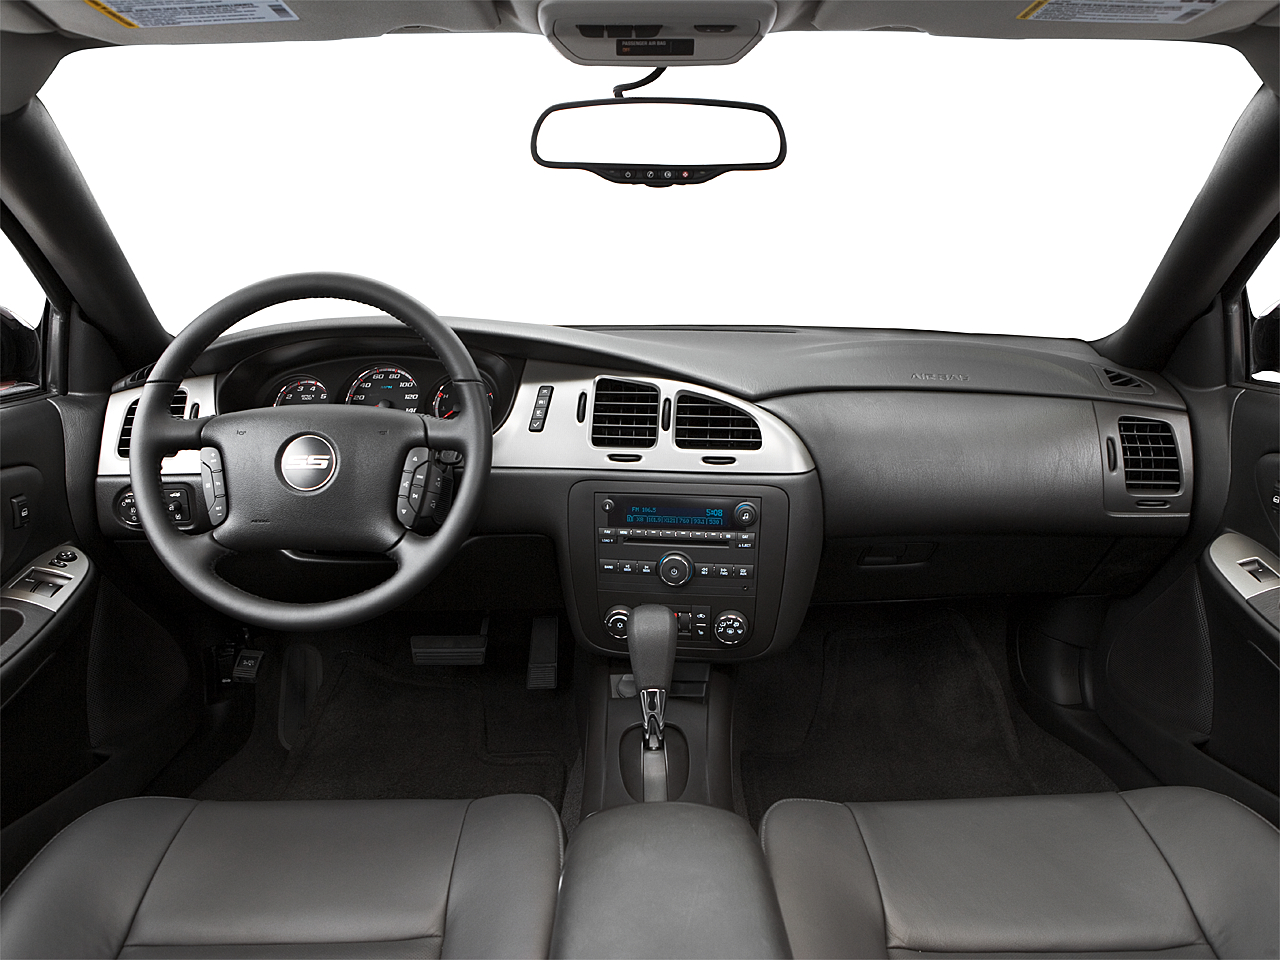 2007 Chevrolet Monte Carlo SS, Centered Wide Dash Shot